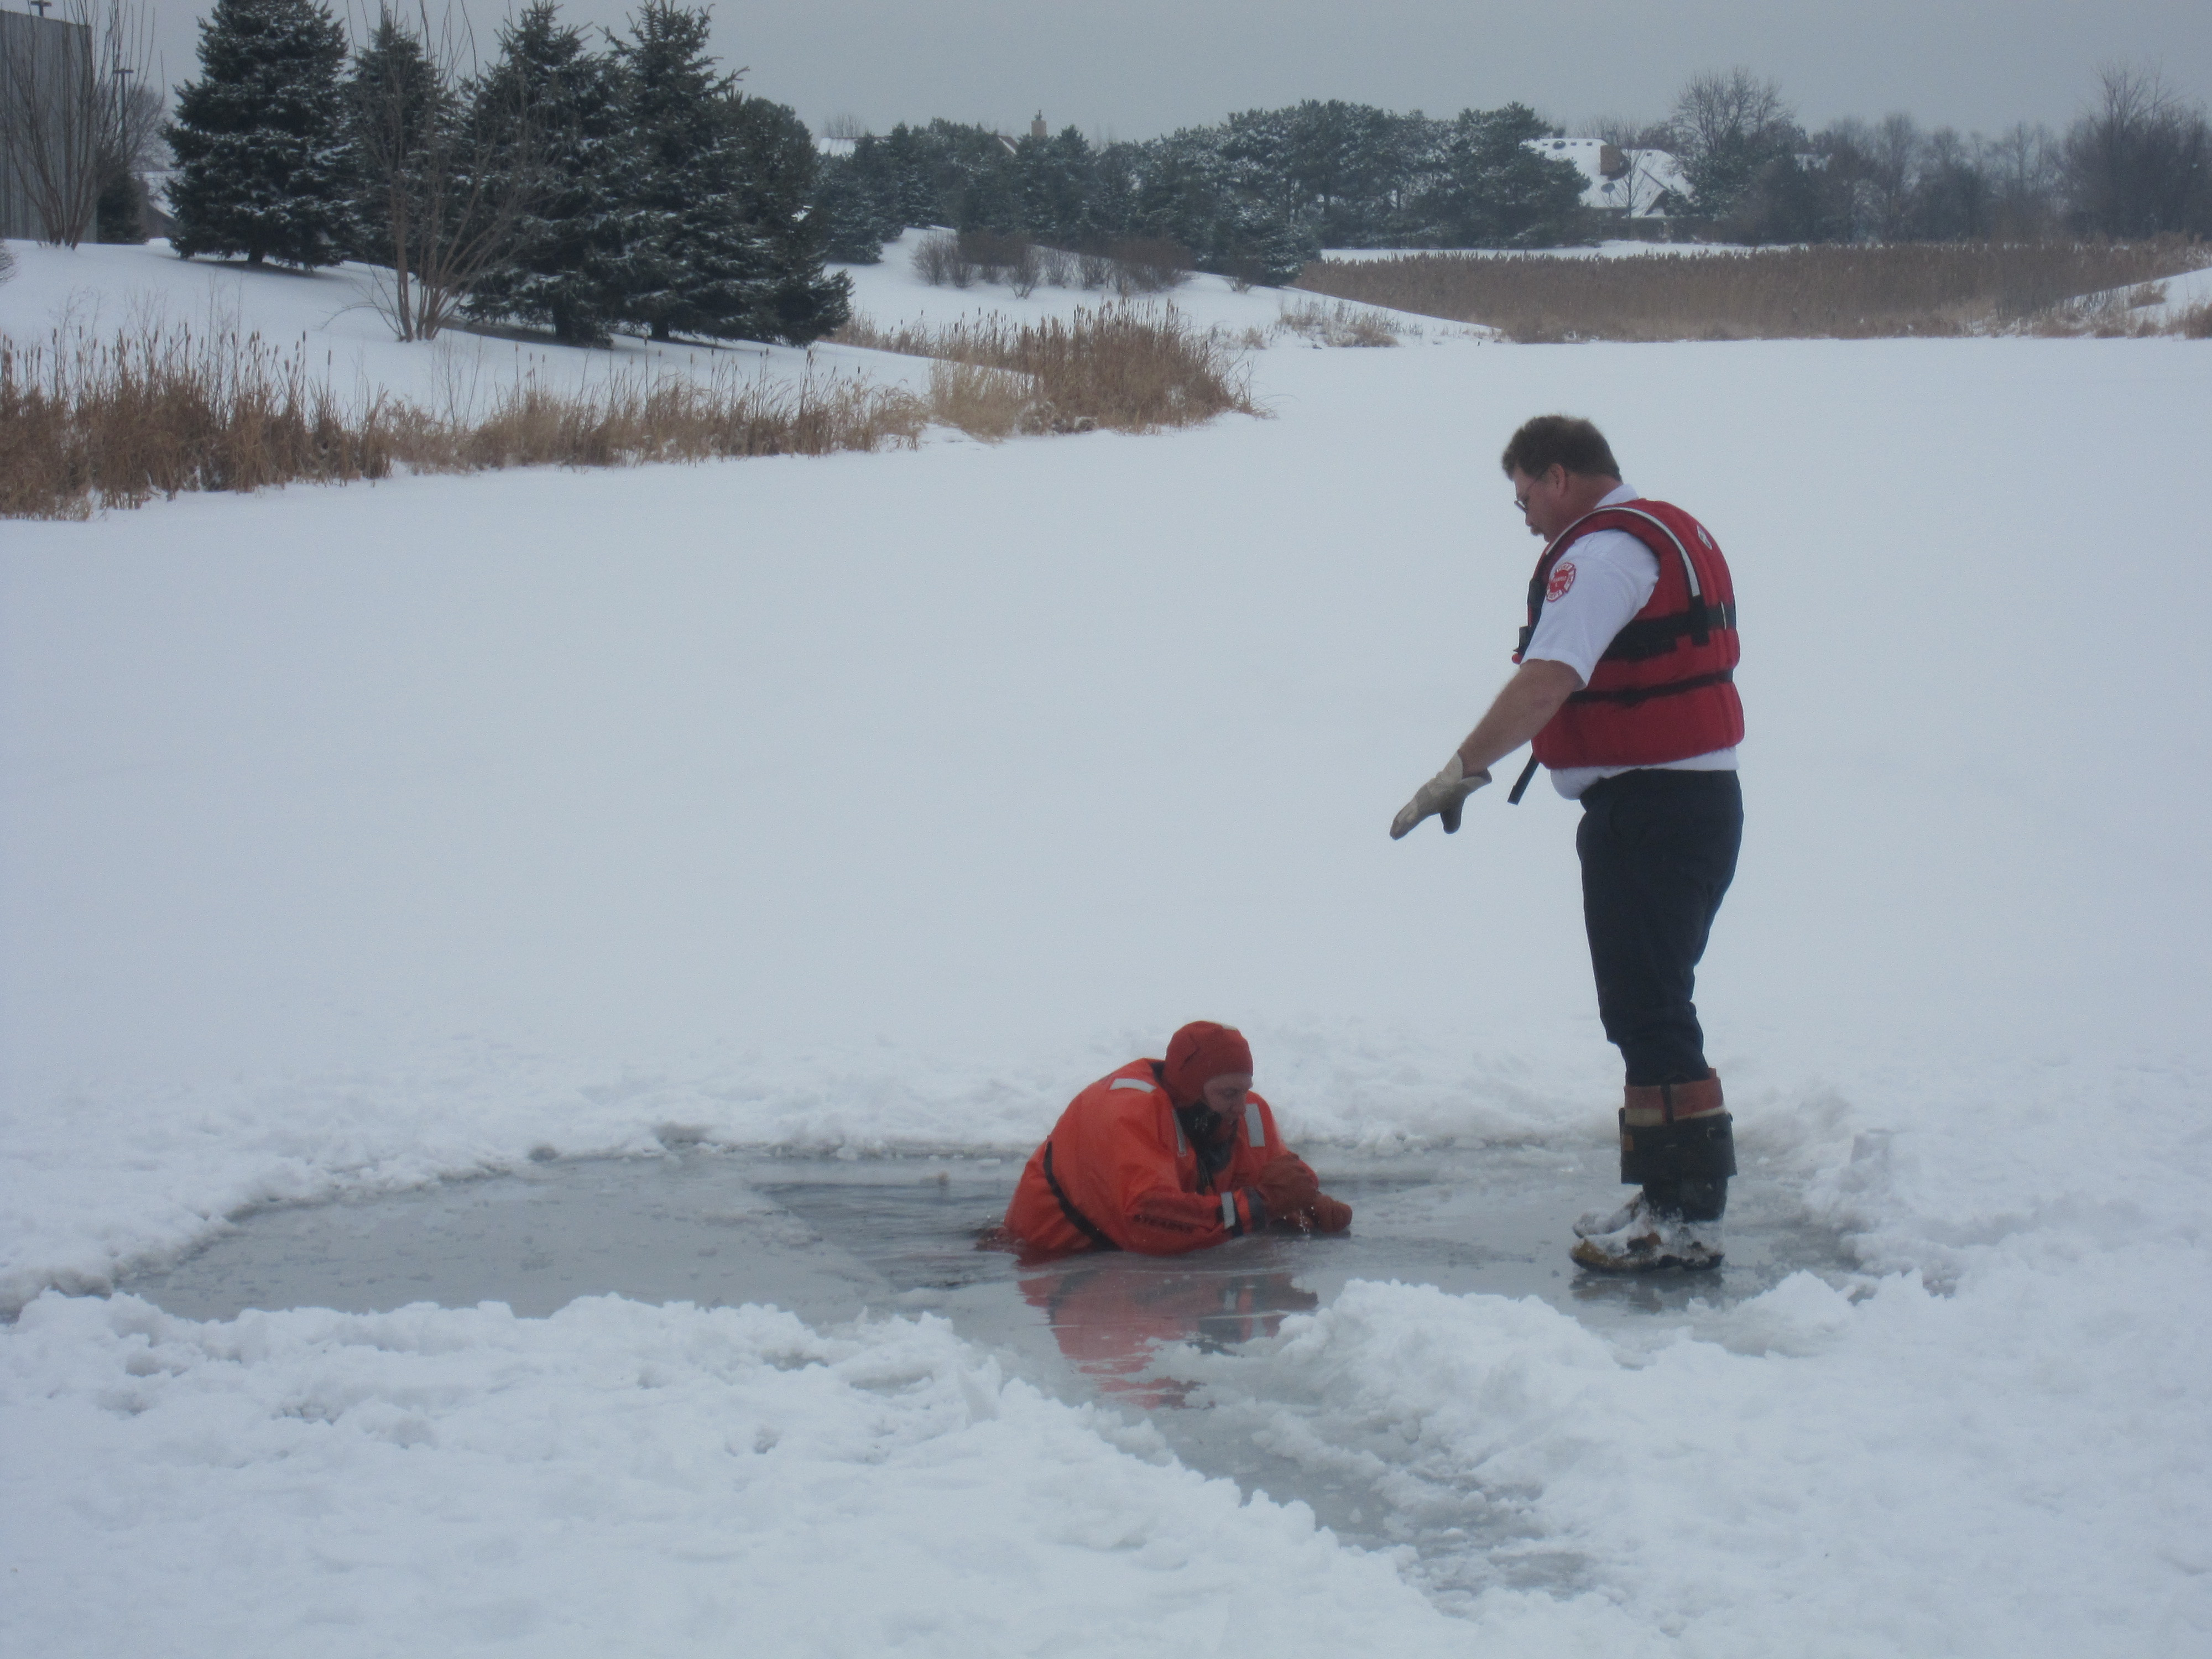 Fire Department Warns Of Playing On Icy Ponds Plainfield News Photos And Events